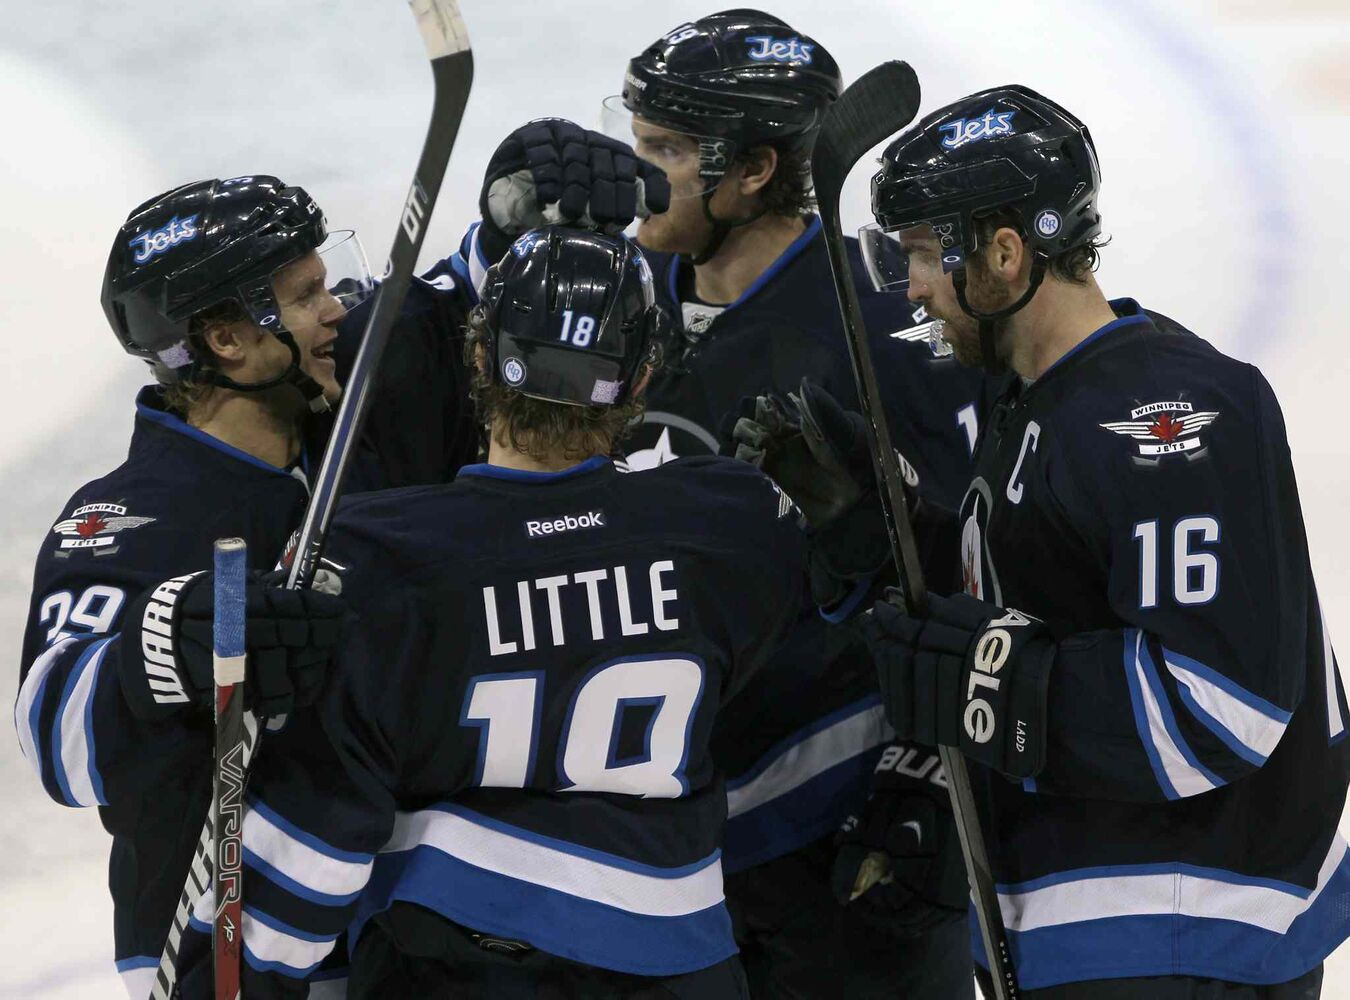 Winnipeg Jets (from left) Tobias Enstrom, Bryan Little, Jim Slater and Andrew Ladd celebrate the team's late empty-net goal in the third period, giving the Jets a 5-3 win over the Los Angeles Kings. (JOE BRYKSA / WINNIPEG FREE PRESS)